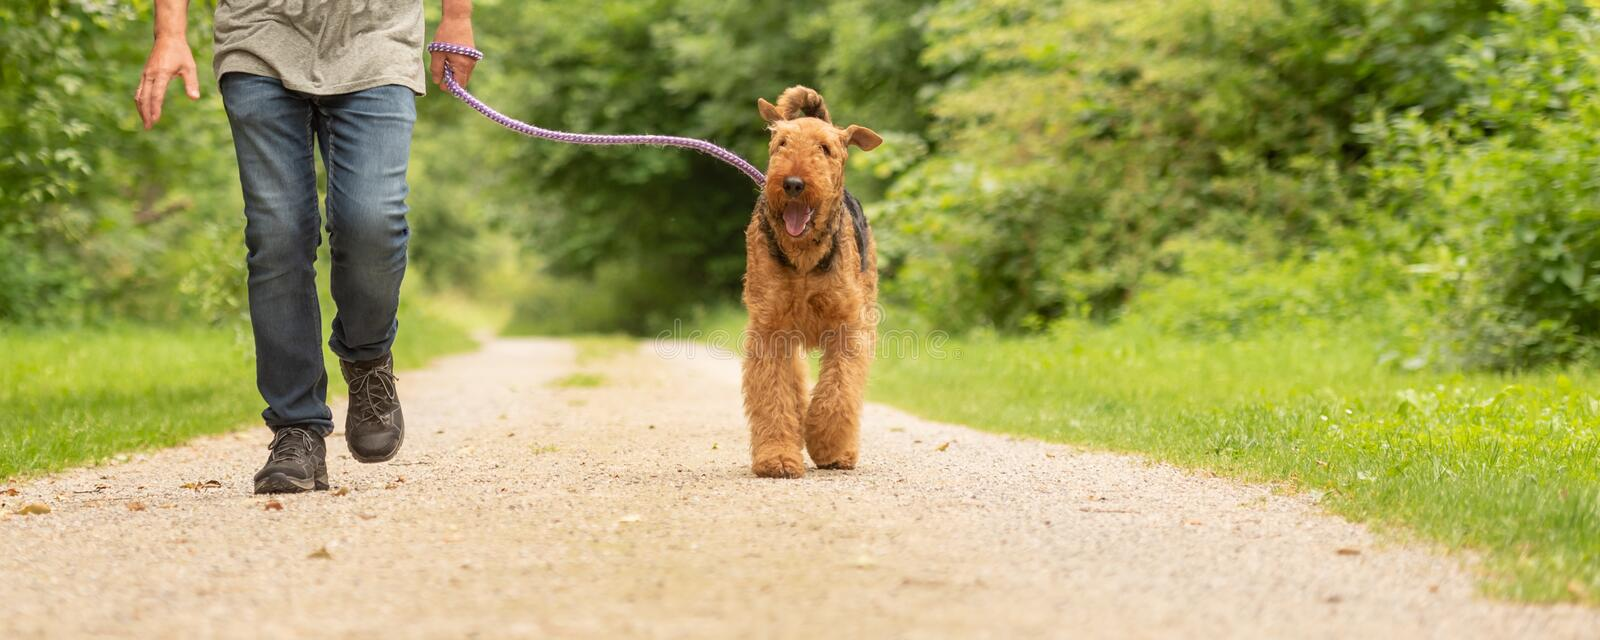 Airedale Terrier. Dog handler is walking with his obedient dog on the road in a forest. Airedale Terrier. Dog handler is walking with his obedient dog on a rural royalty free stock image